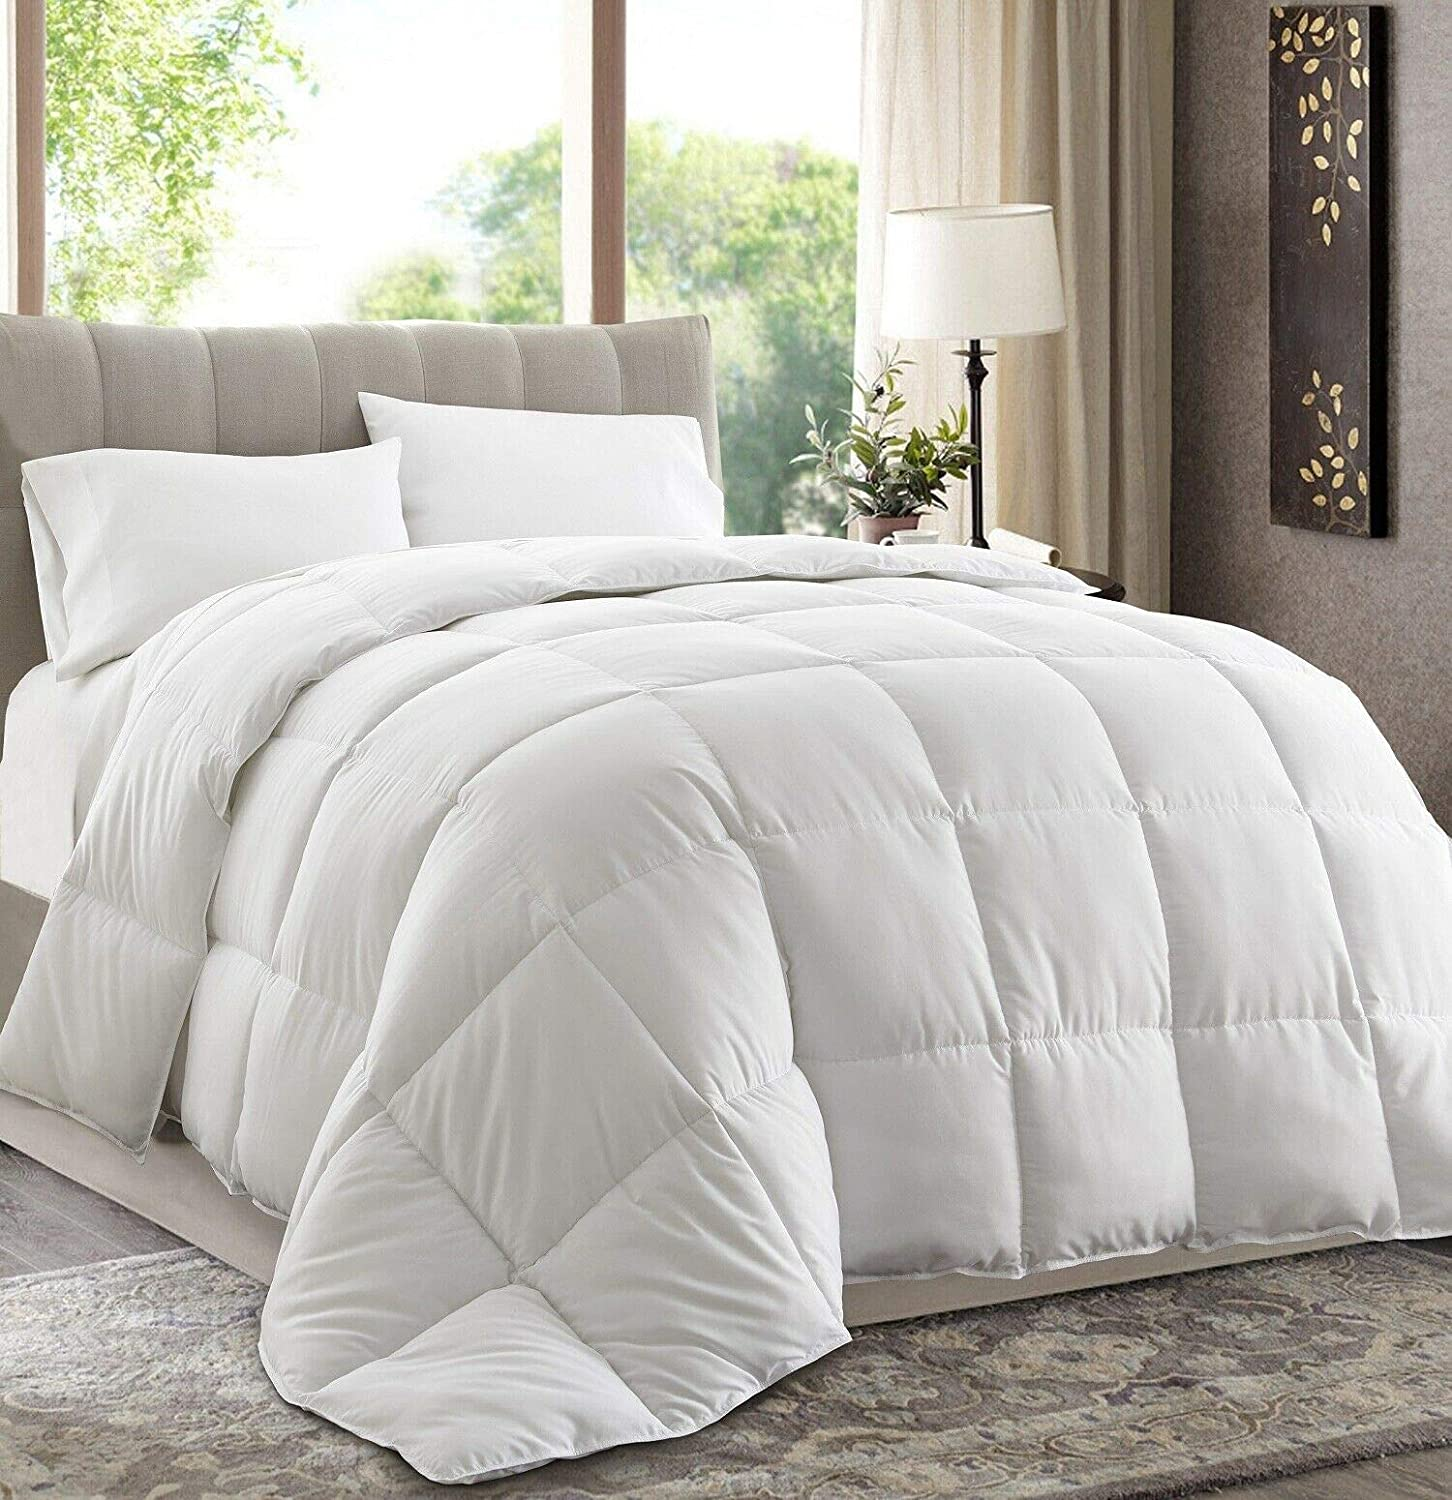 Chezmoi Collection Goose Down Alternative Comforter Duvet Cover Insert Full/Queen Size with Corner Tabs, White